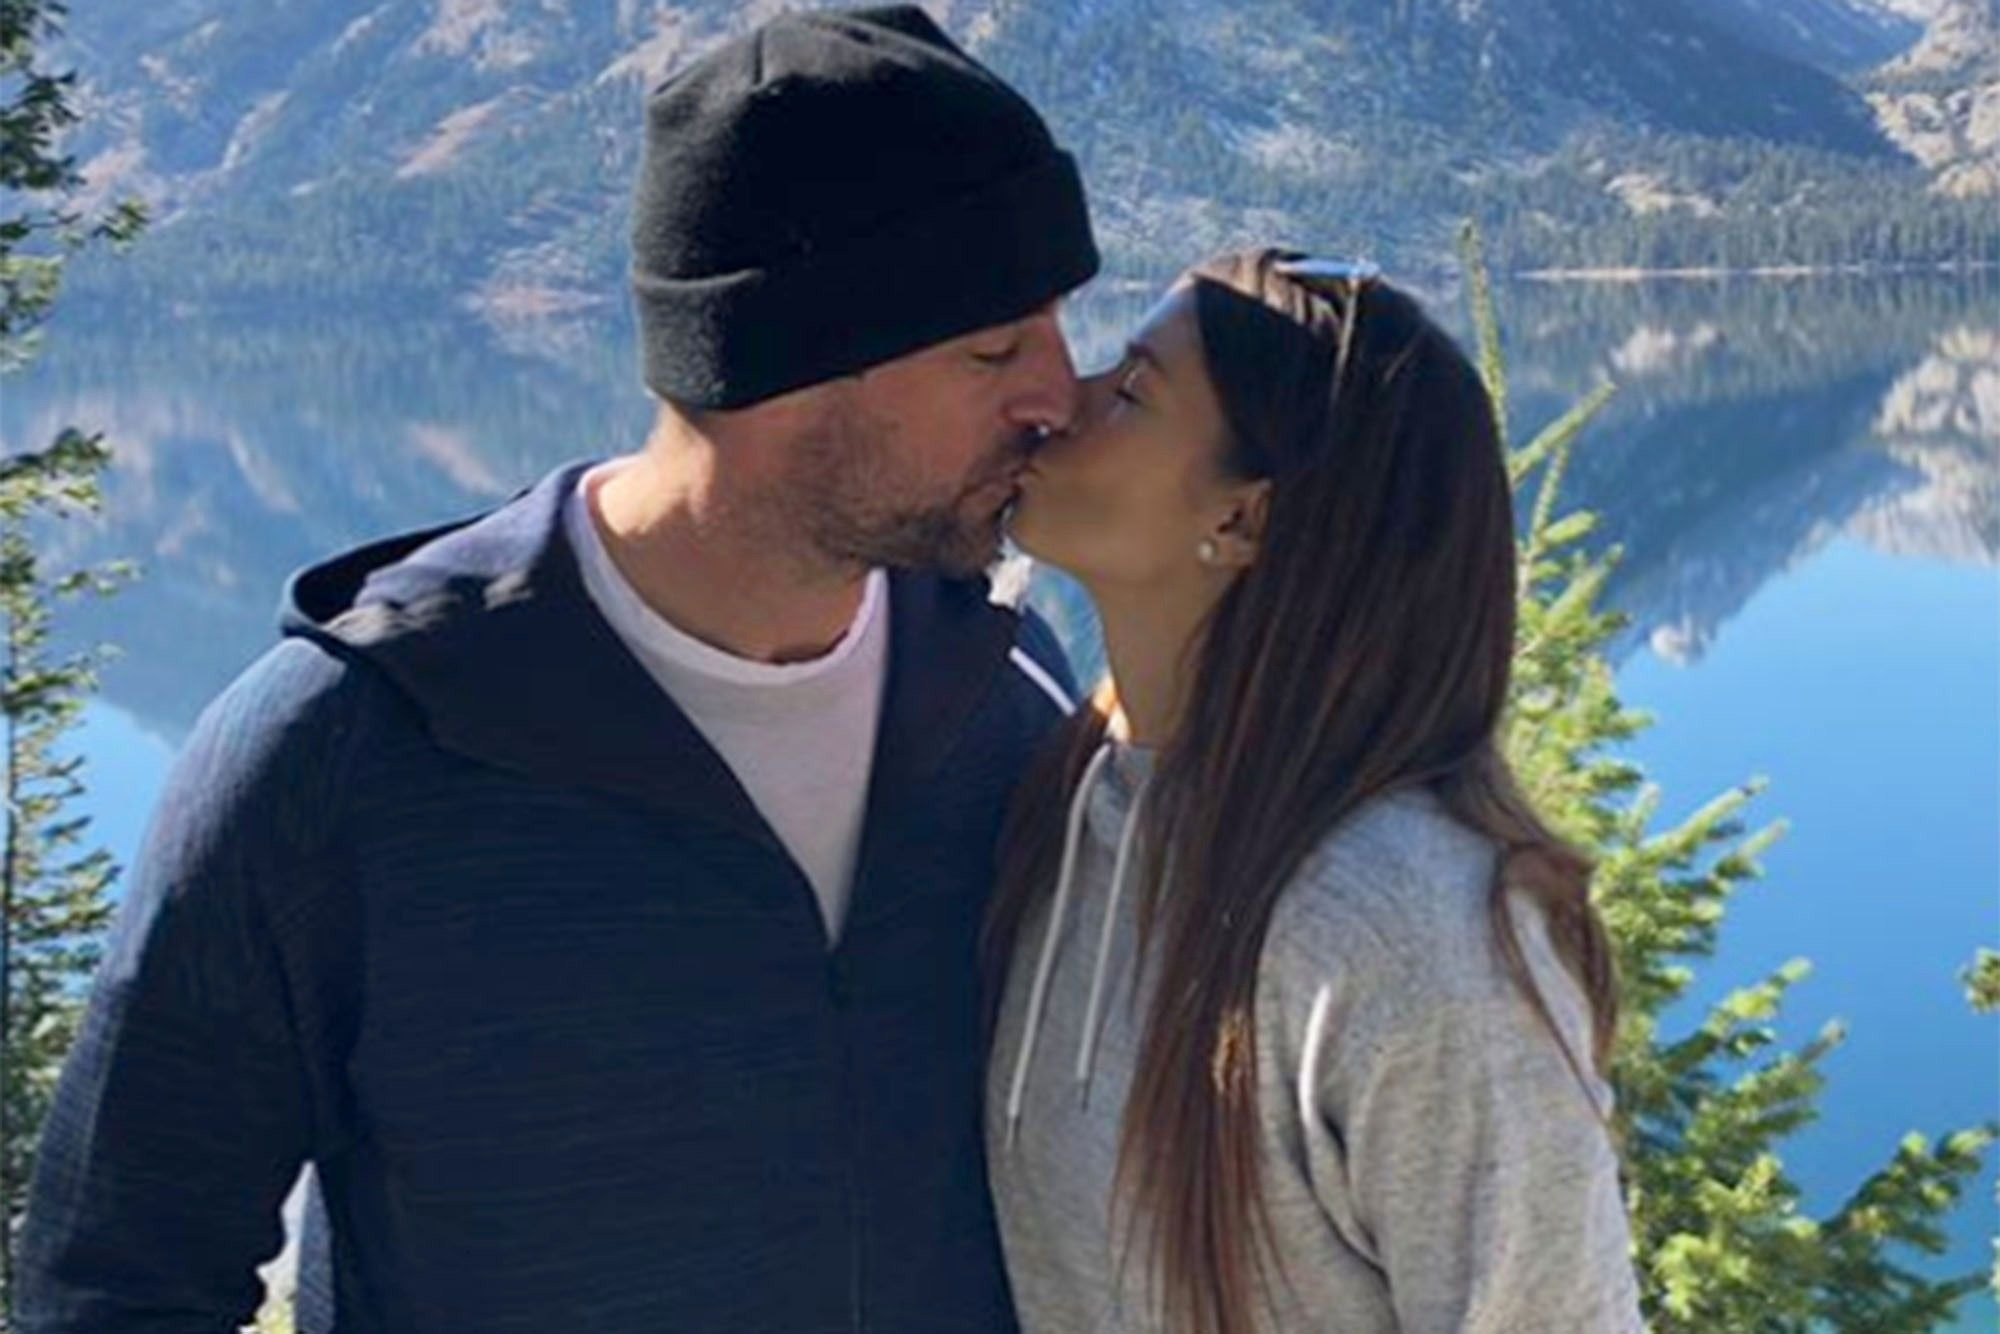 Pin By Crystal Naeger On Aaron Rodgers Couple Photos Couples Aaron Rodgers